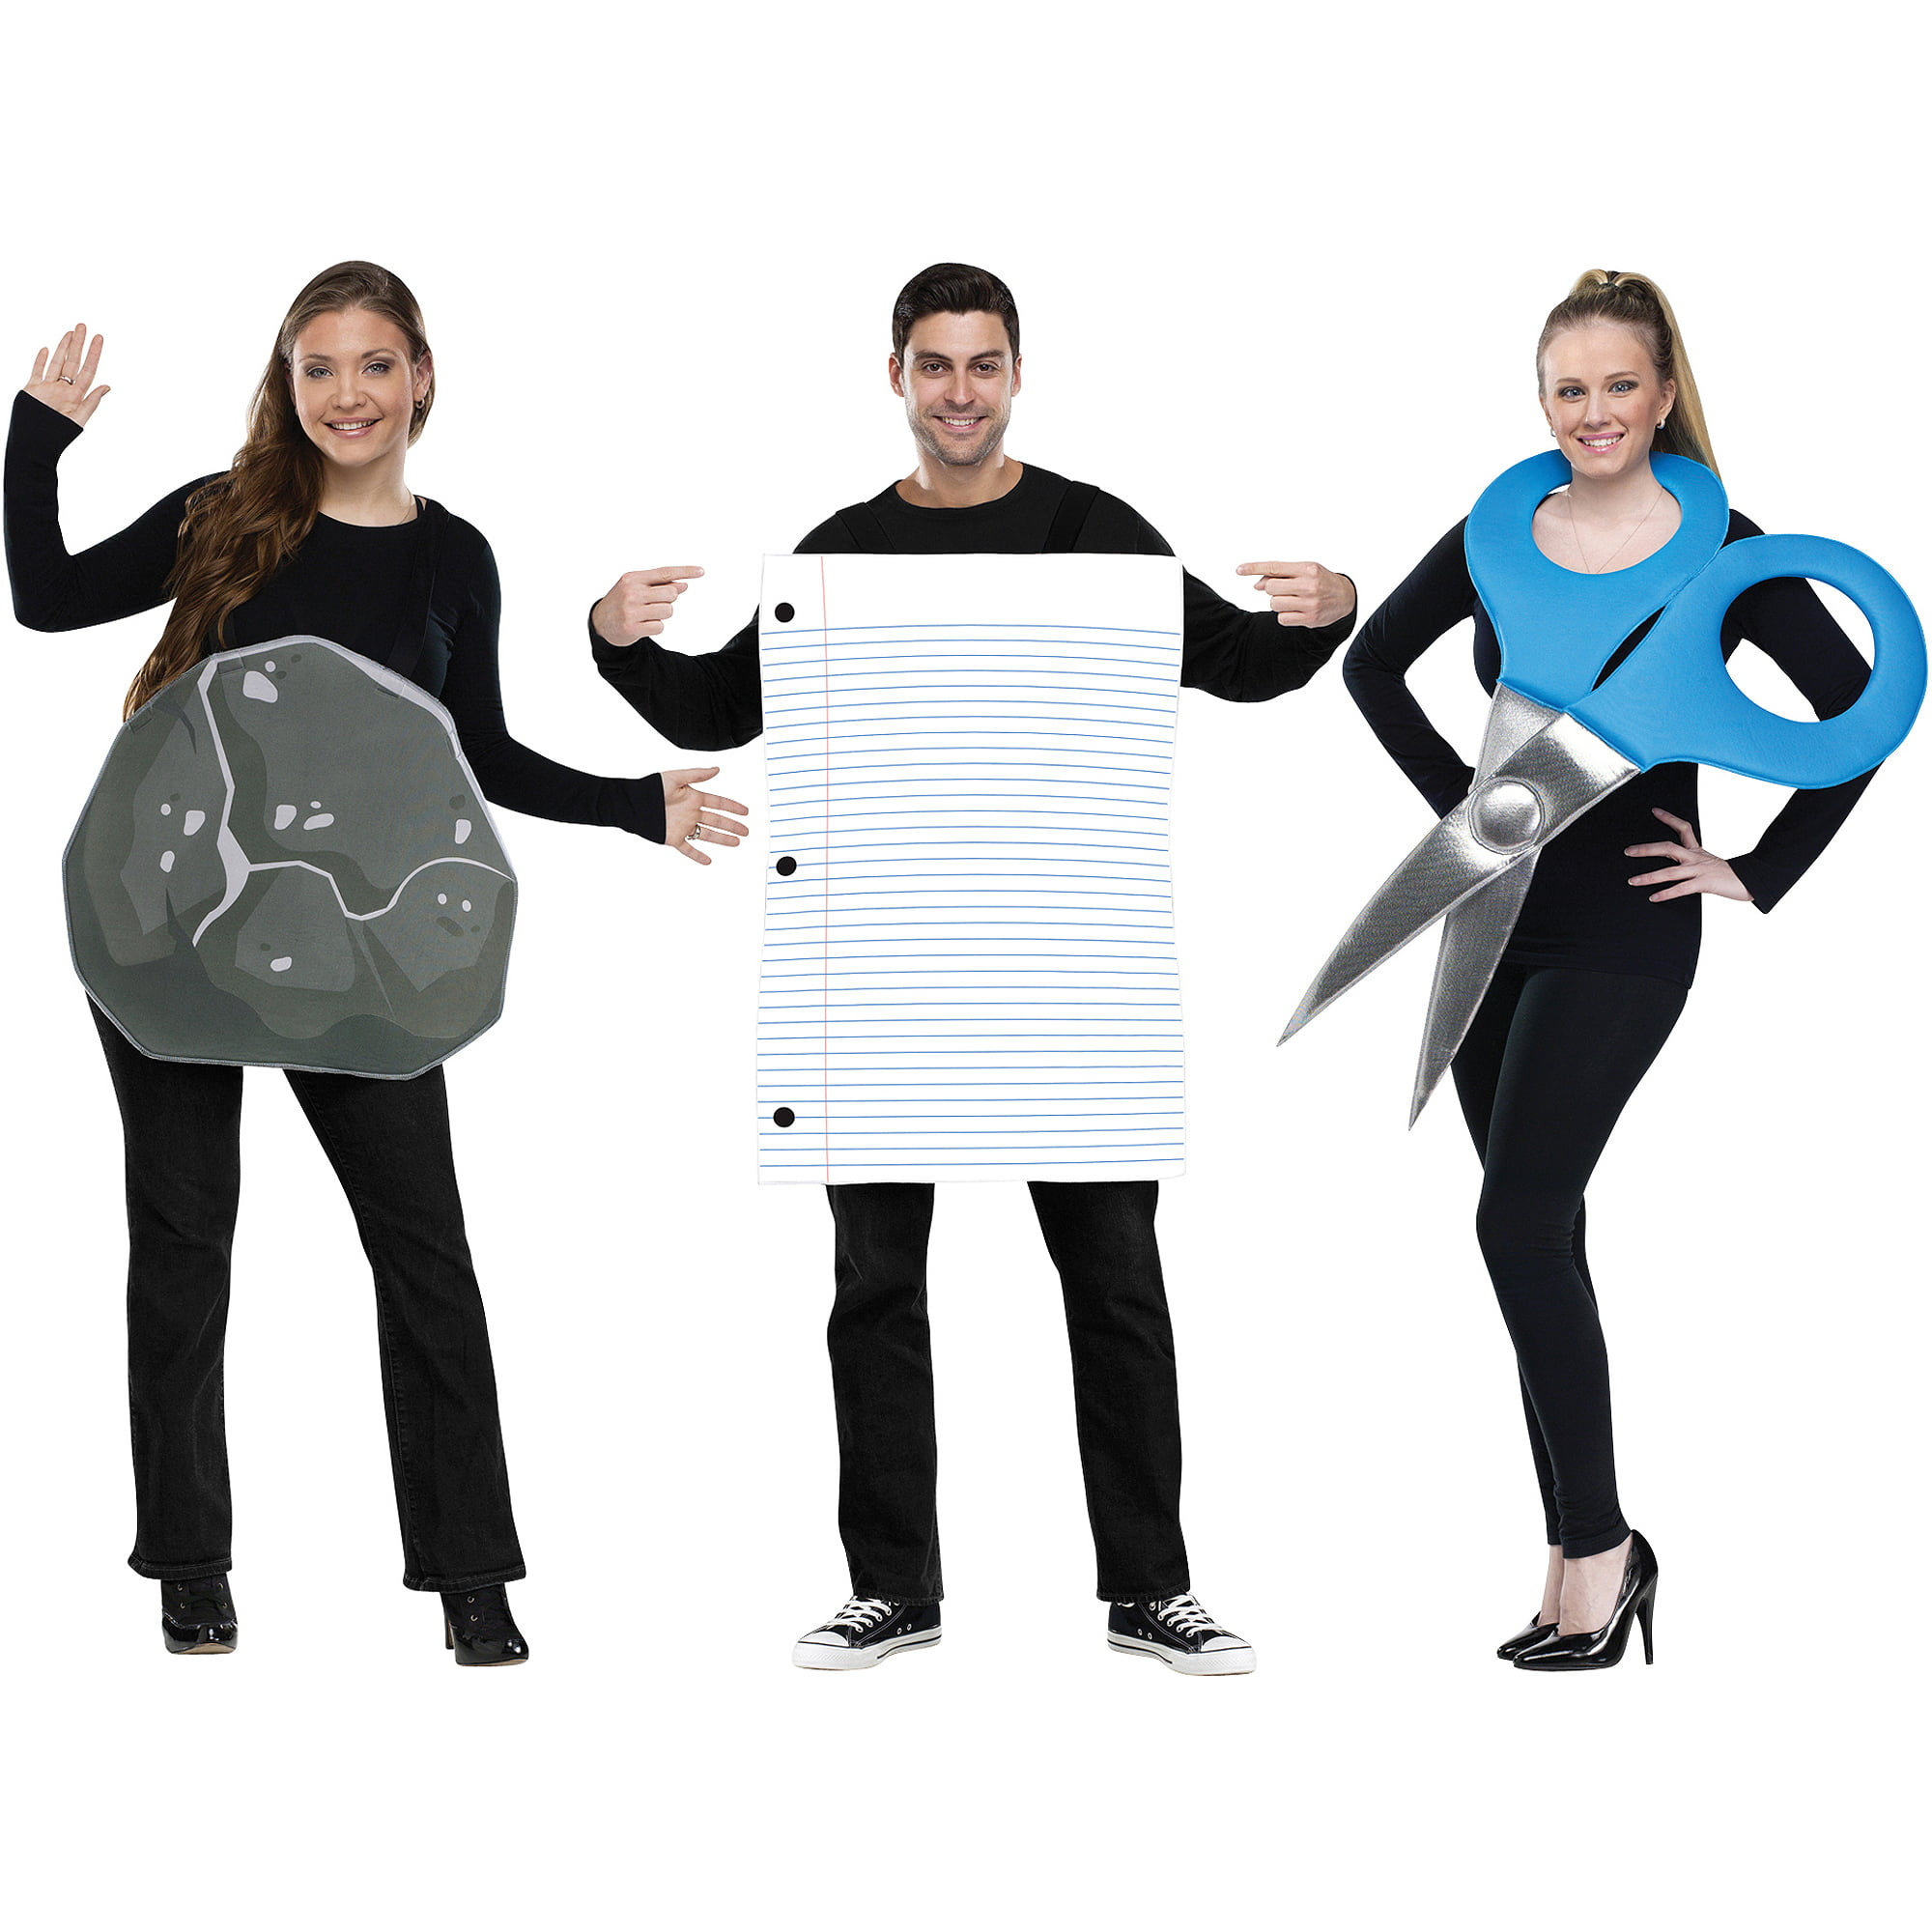 sc 1 st  Walmart & Rock Paper Scissors Adult Halloween Costume - Walmart.com